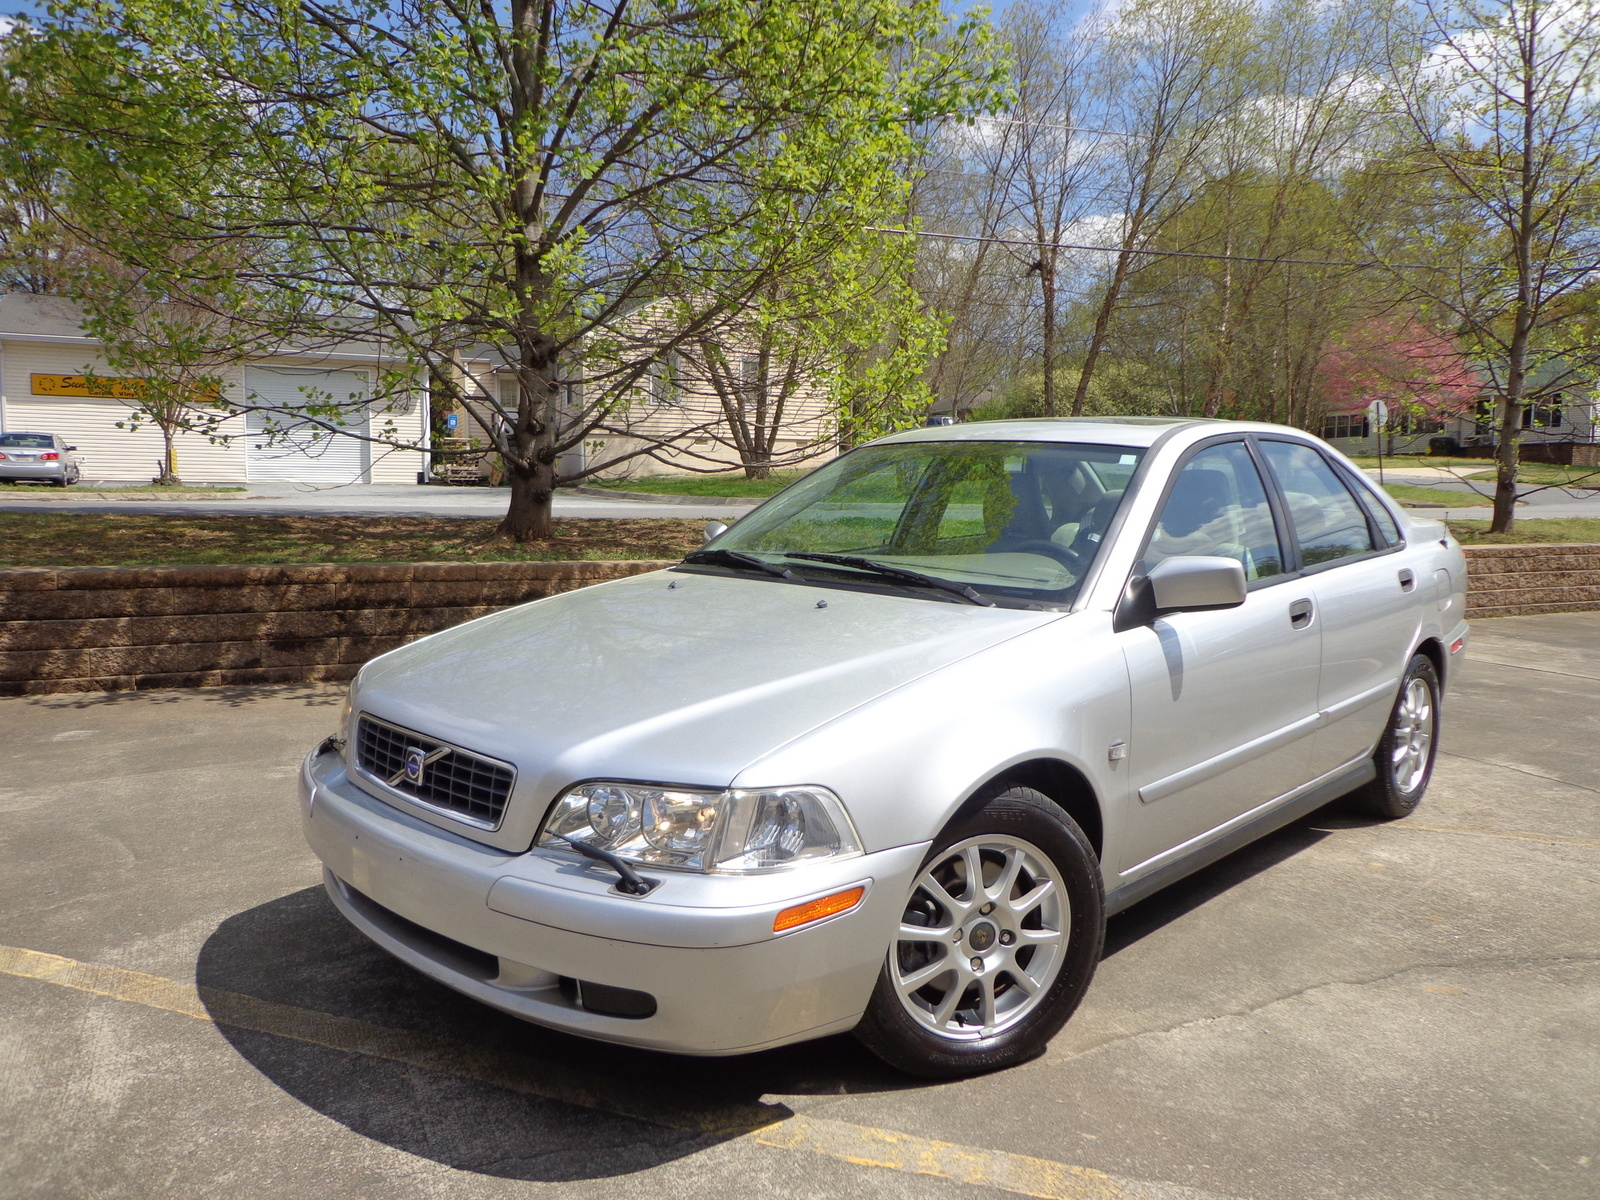 Picture of 2004 volvo s40 1 9t exterior